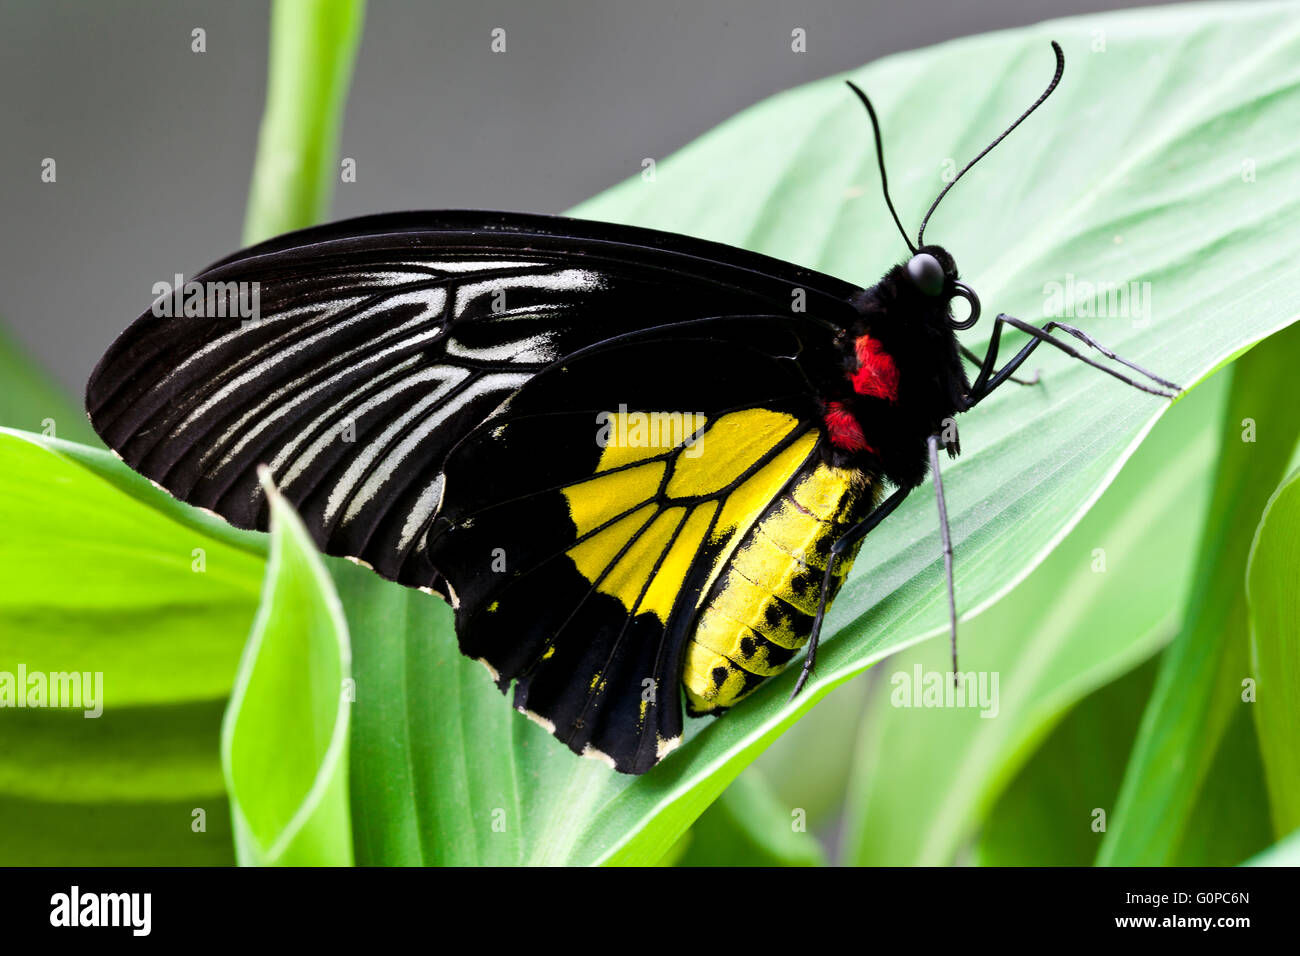 Black and yellow butterfly - Stock Image